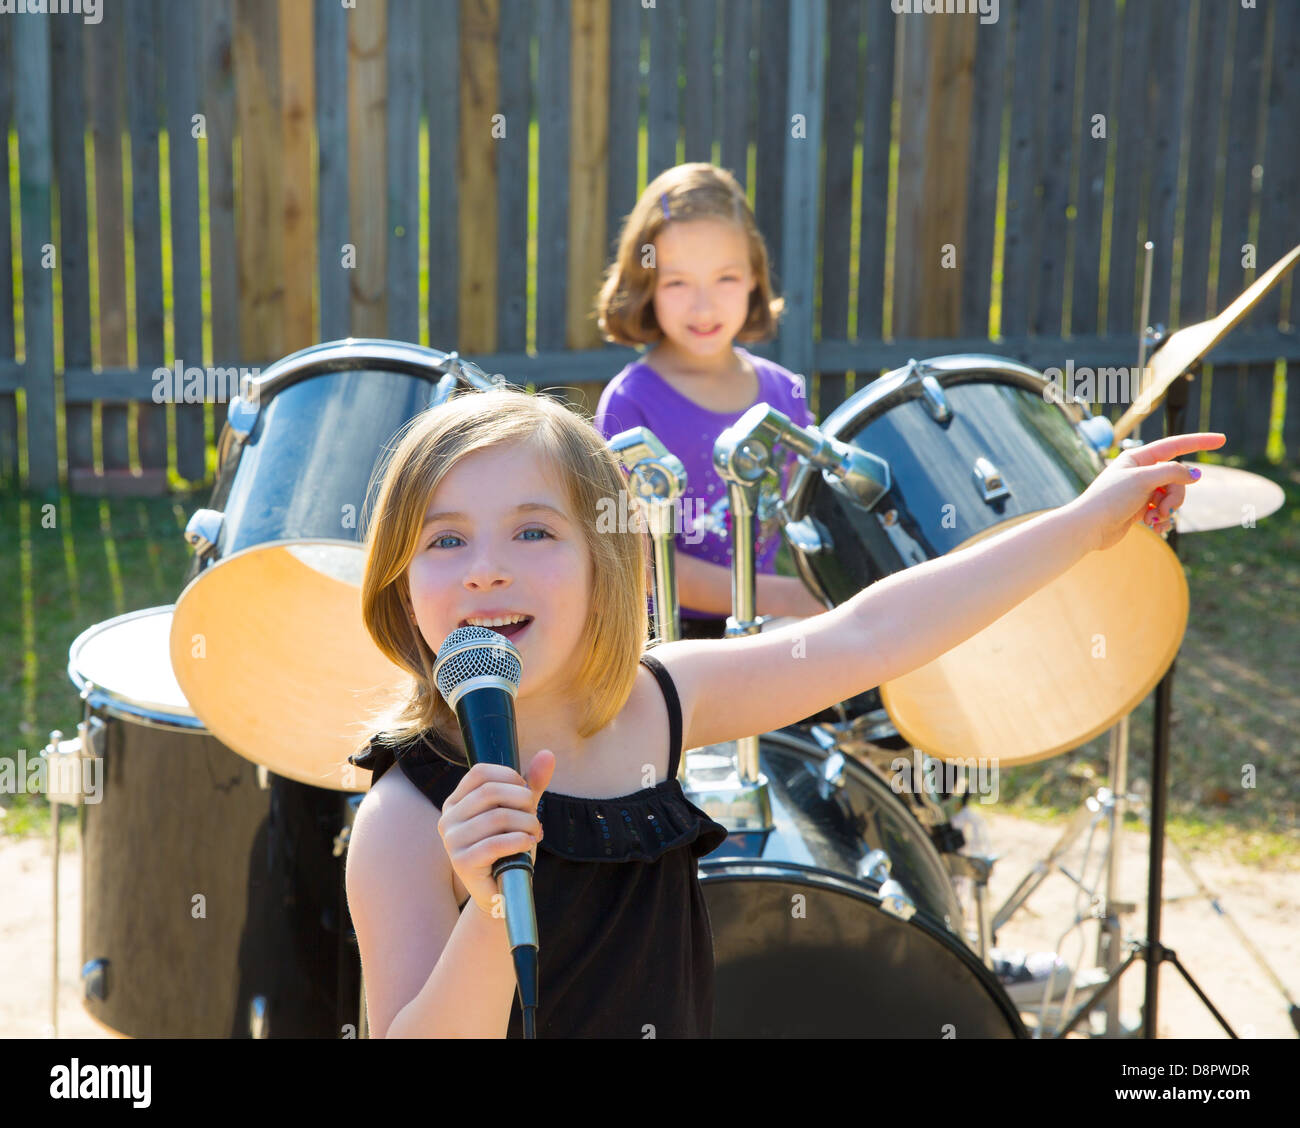 drummer blond kid playing drums in tha backyard stock photo